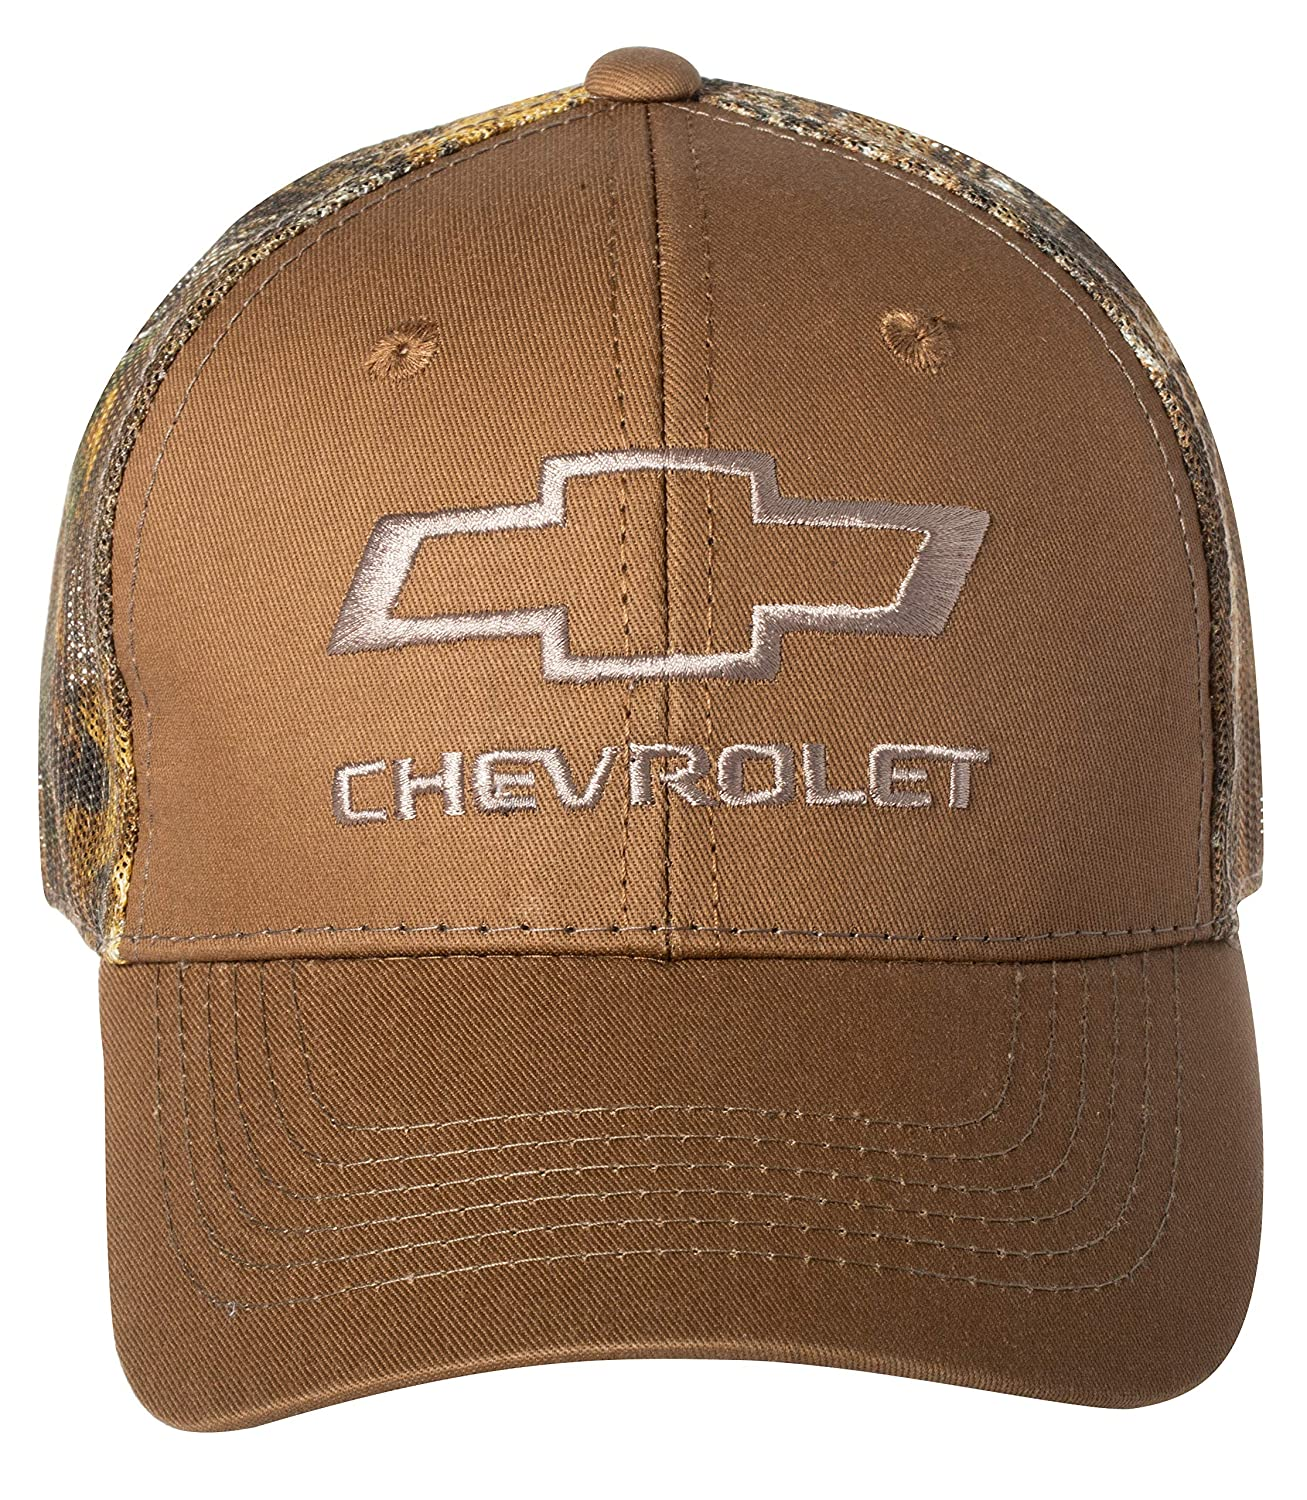 Officially Licensed Chevrolet Chevy Hemi Powered Adjustable Cap Hat